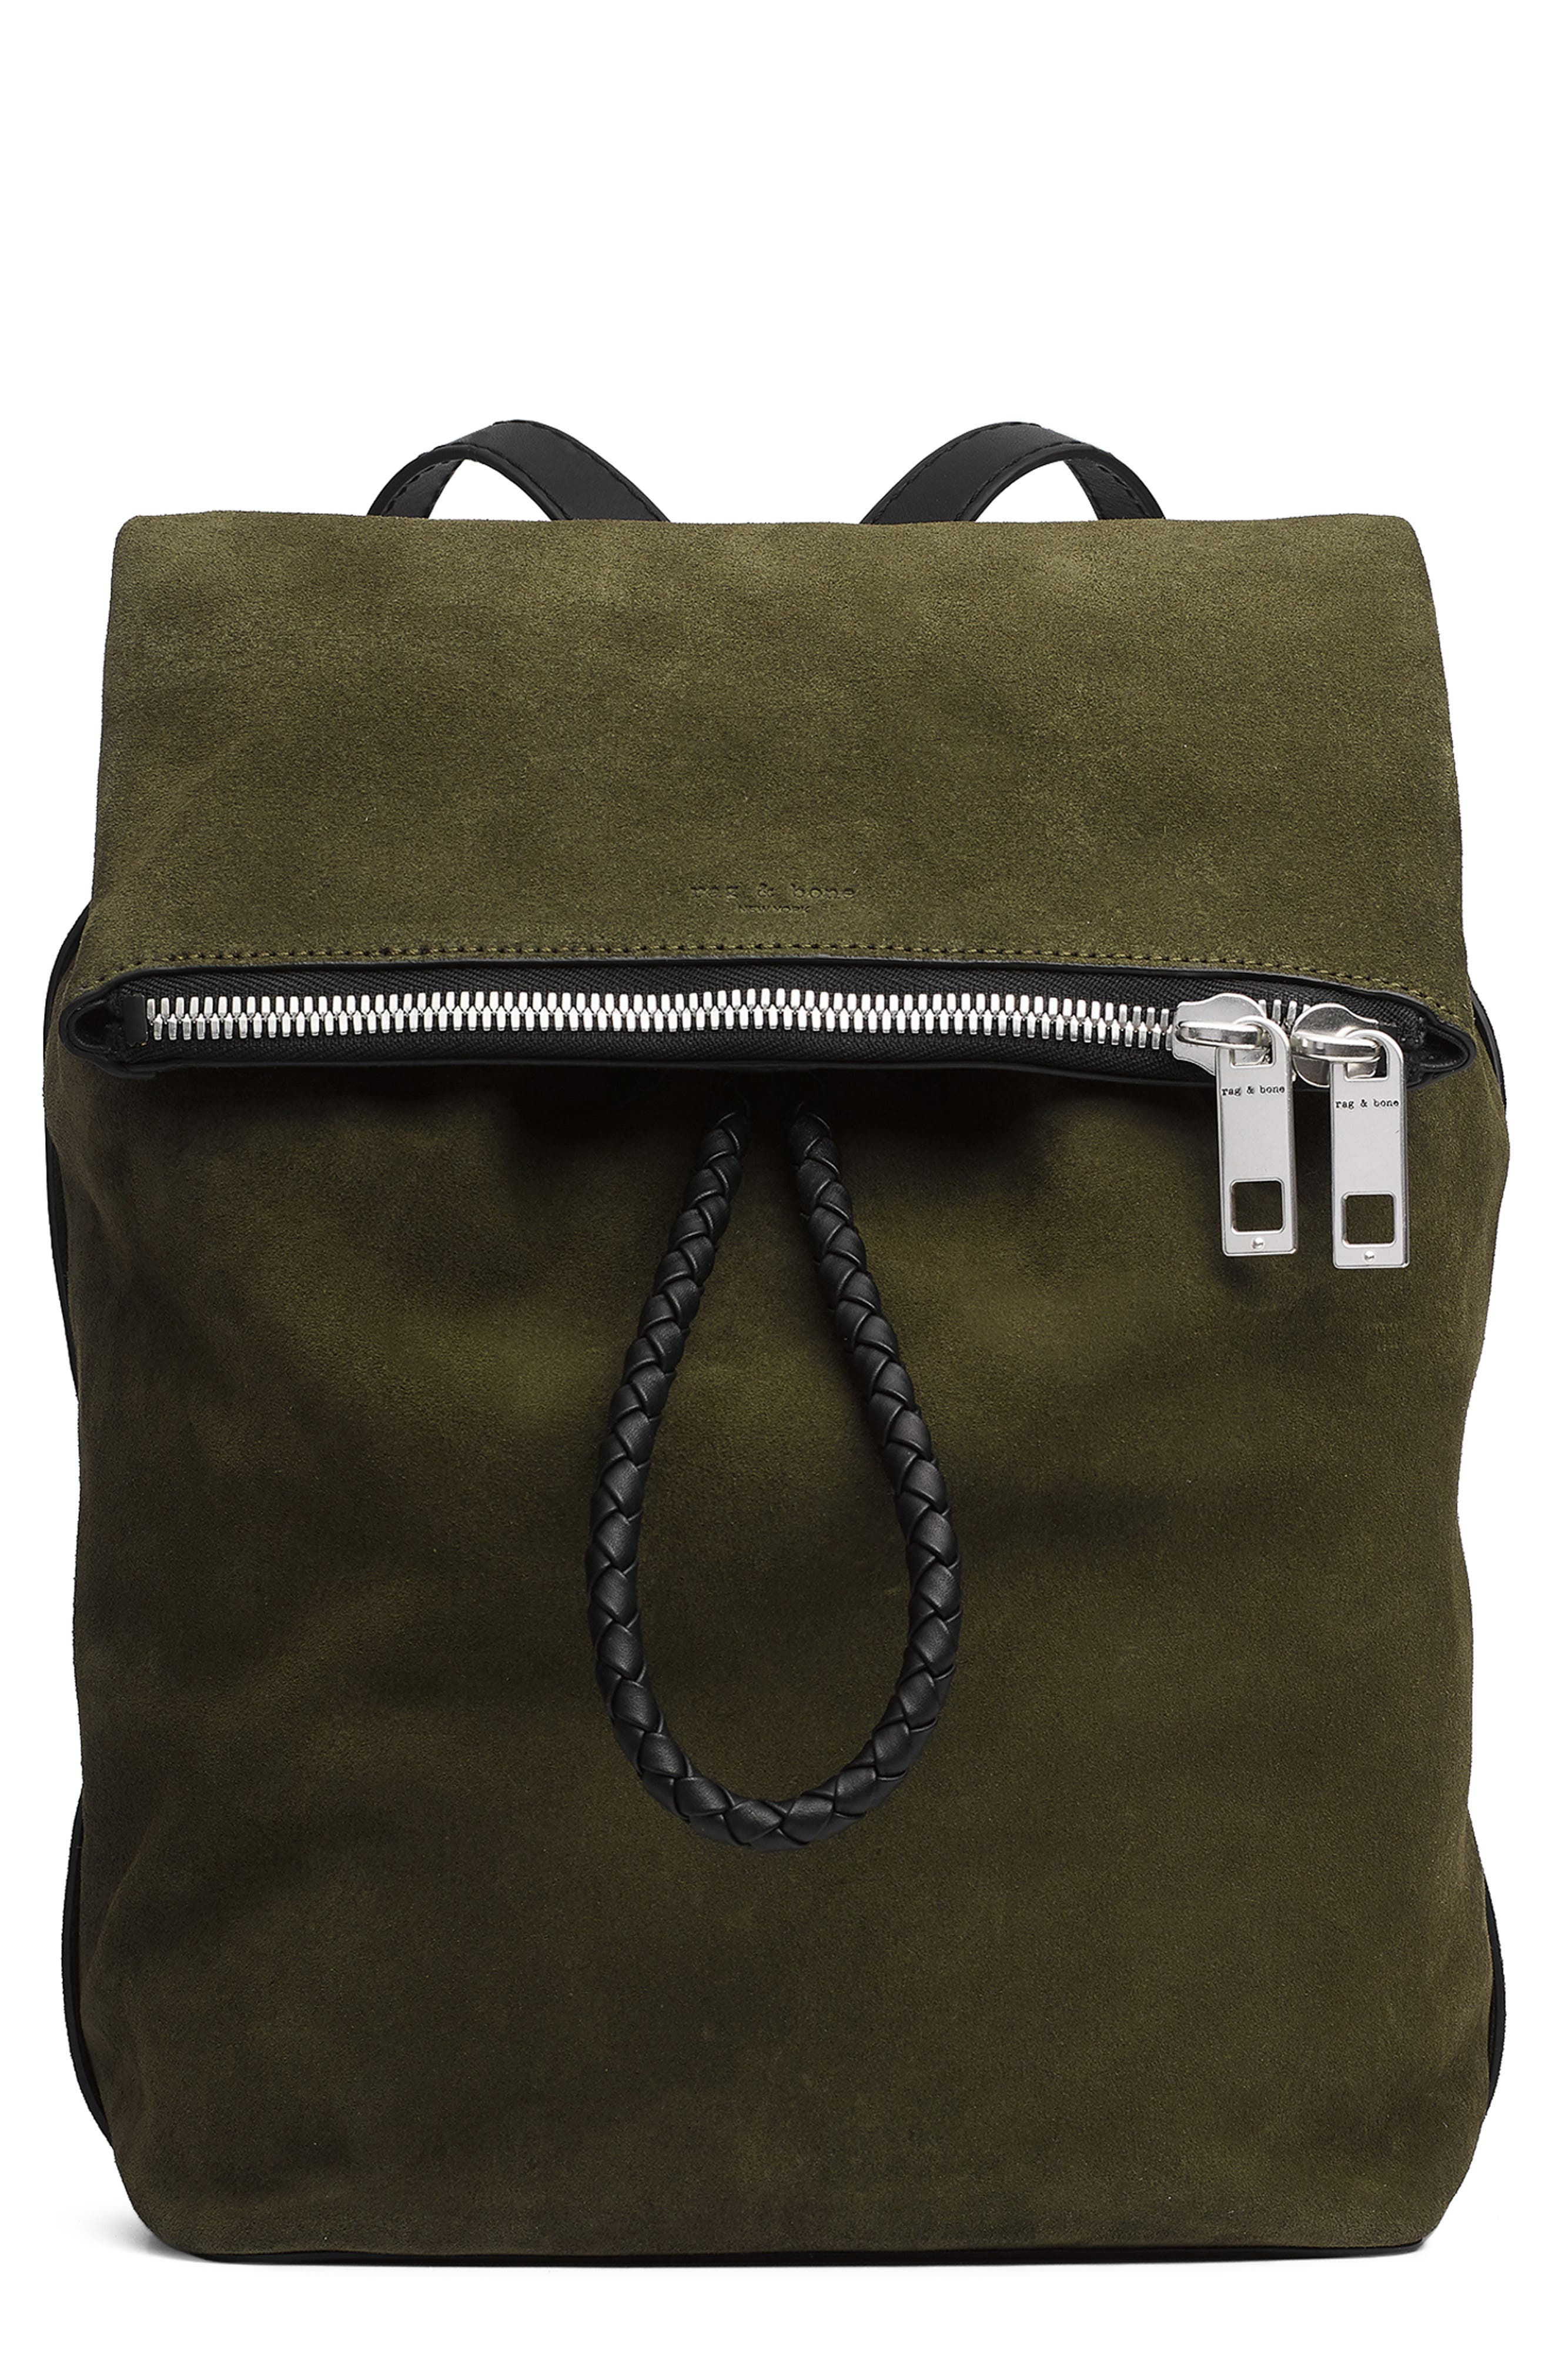 Loner Leather Backpack,                         Main,                         color, OLIVE NIGHT SUEDE